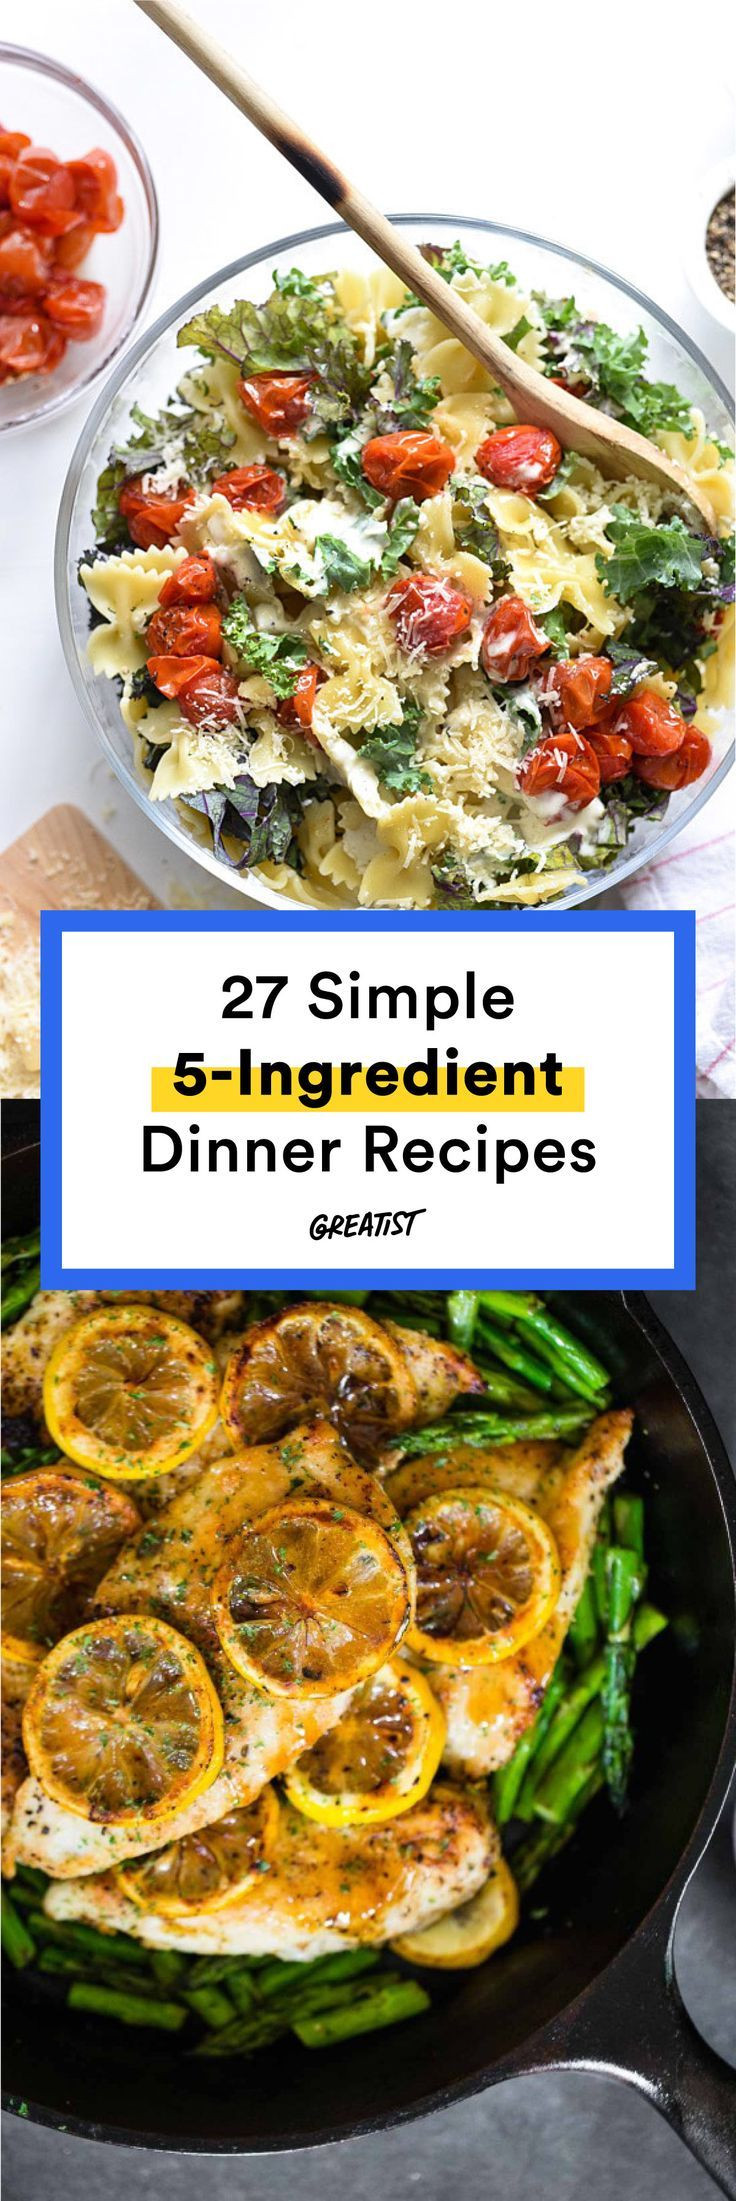 5 Ingredient Healthy Dinners  27 Five Ingre nt Dinner Recipes for Stress Free Meals